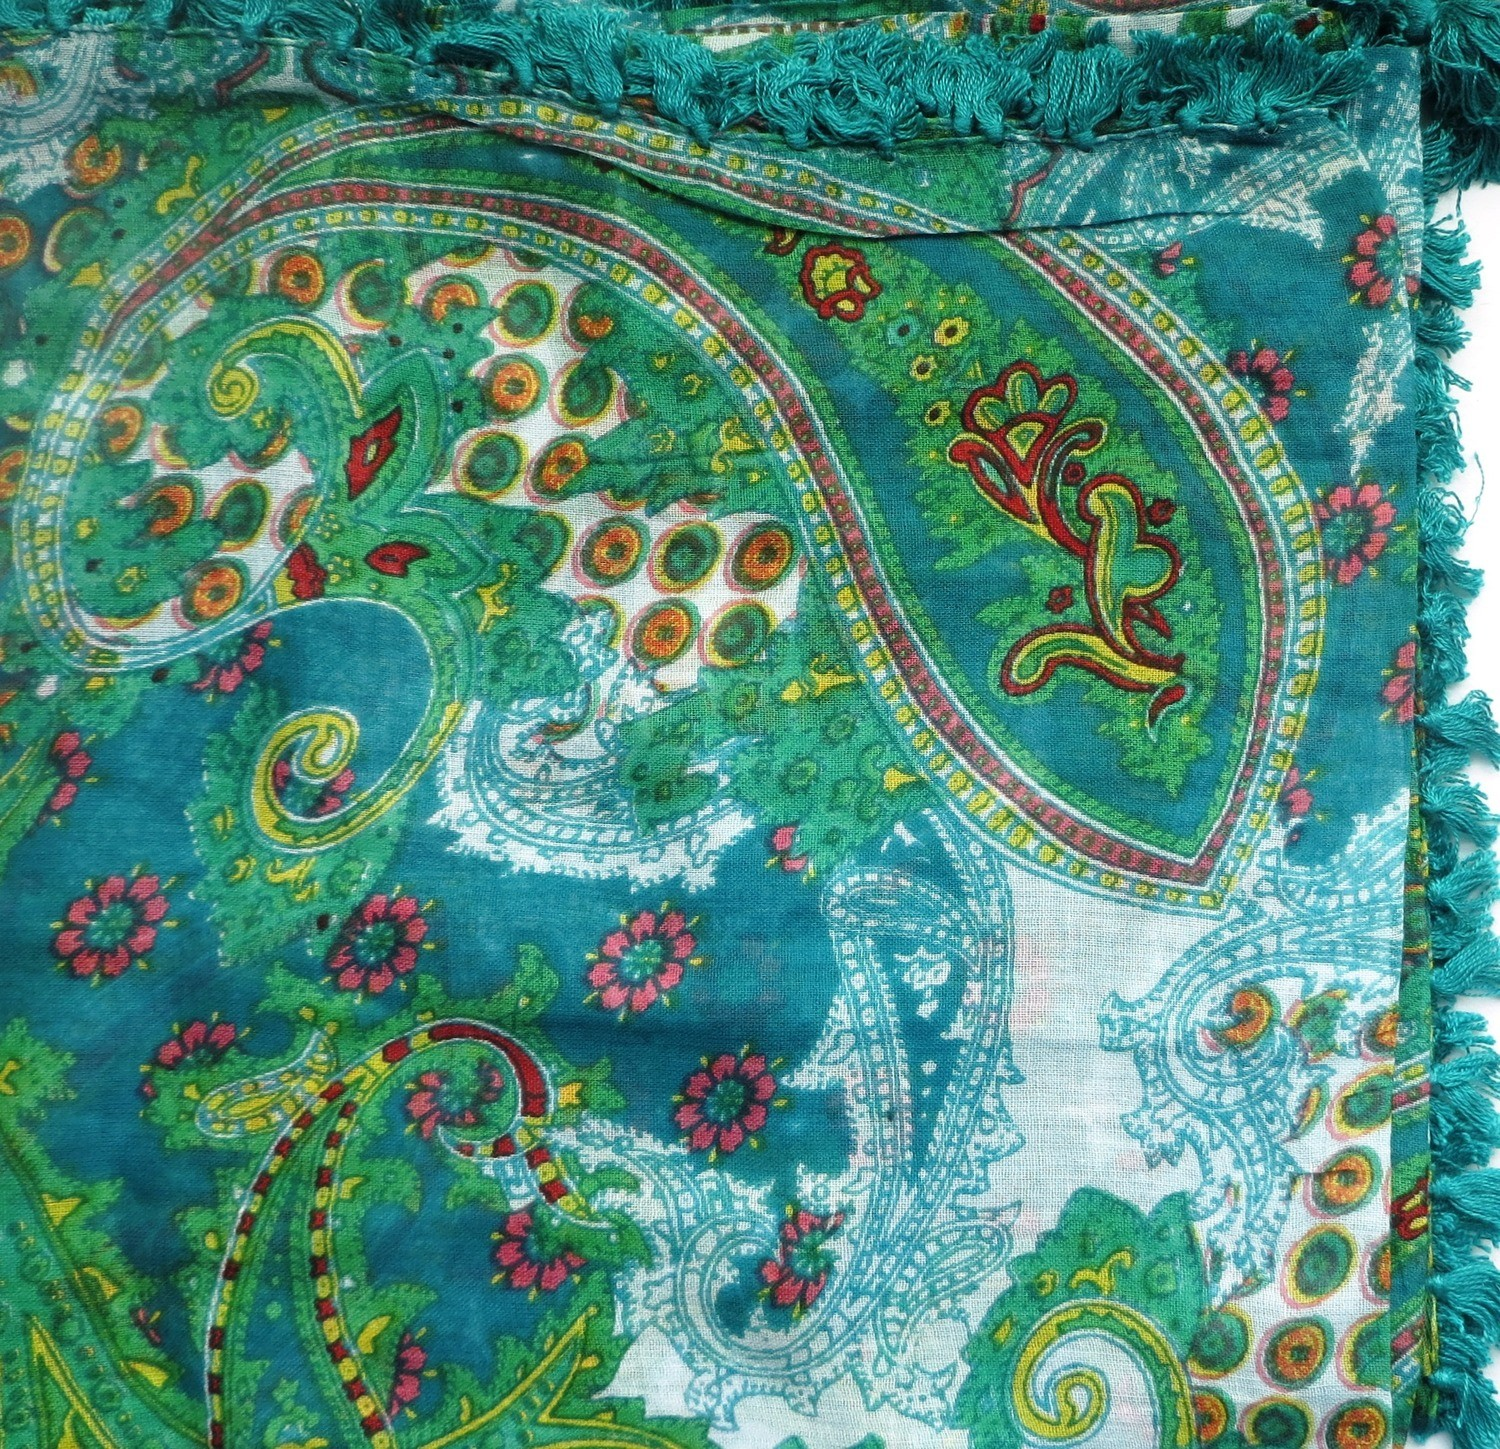 Green with paisley pattern tichel headscarve